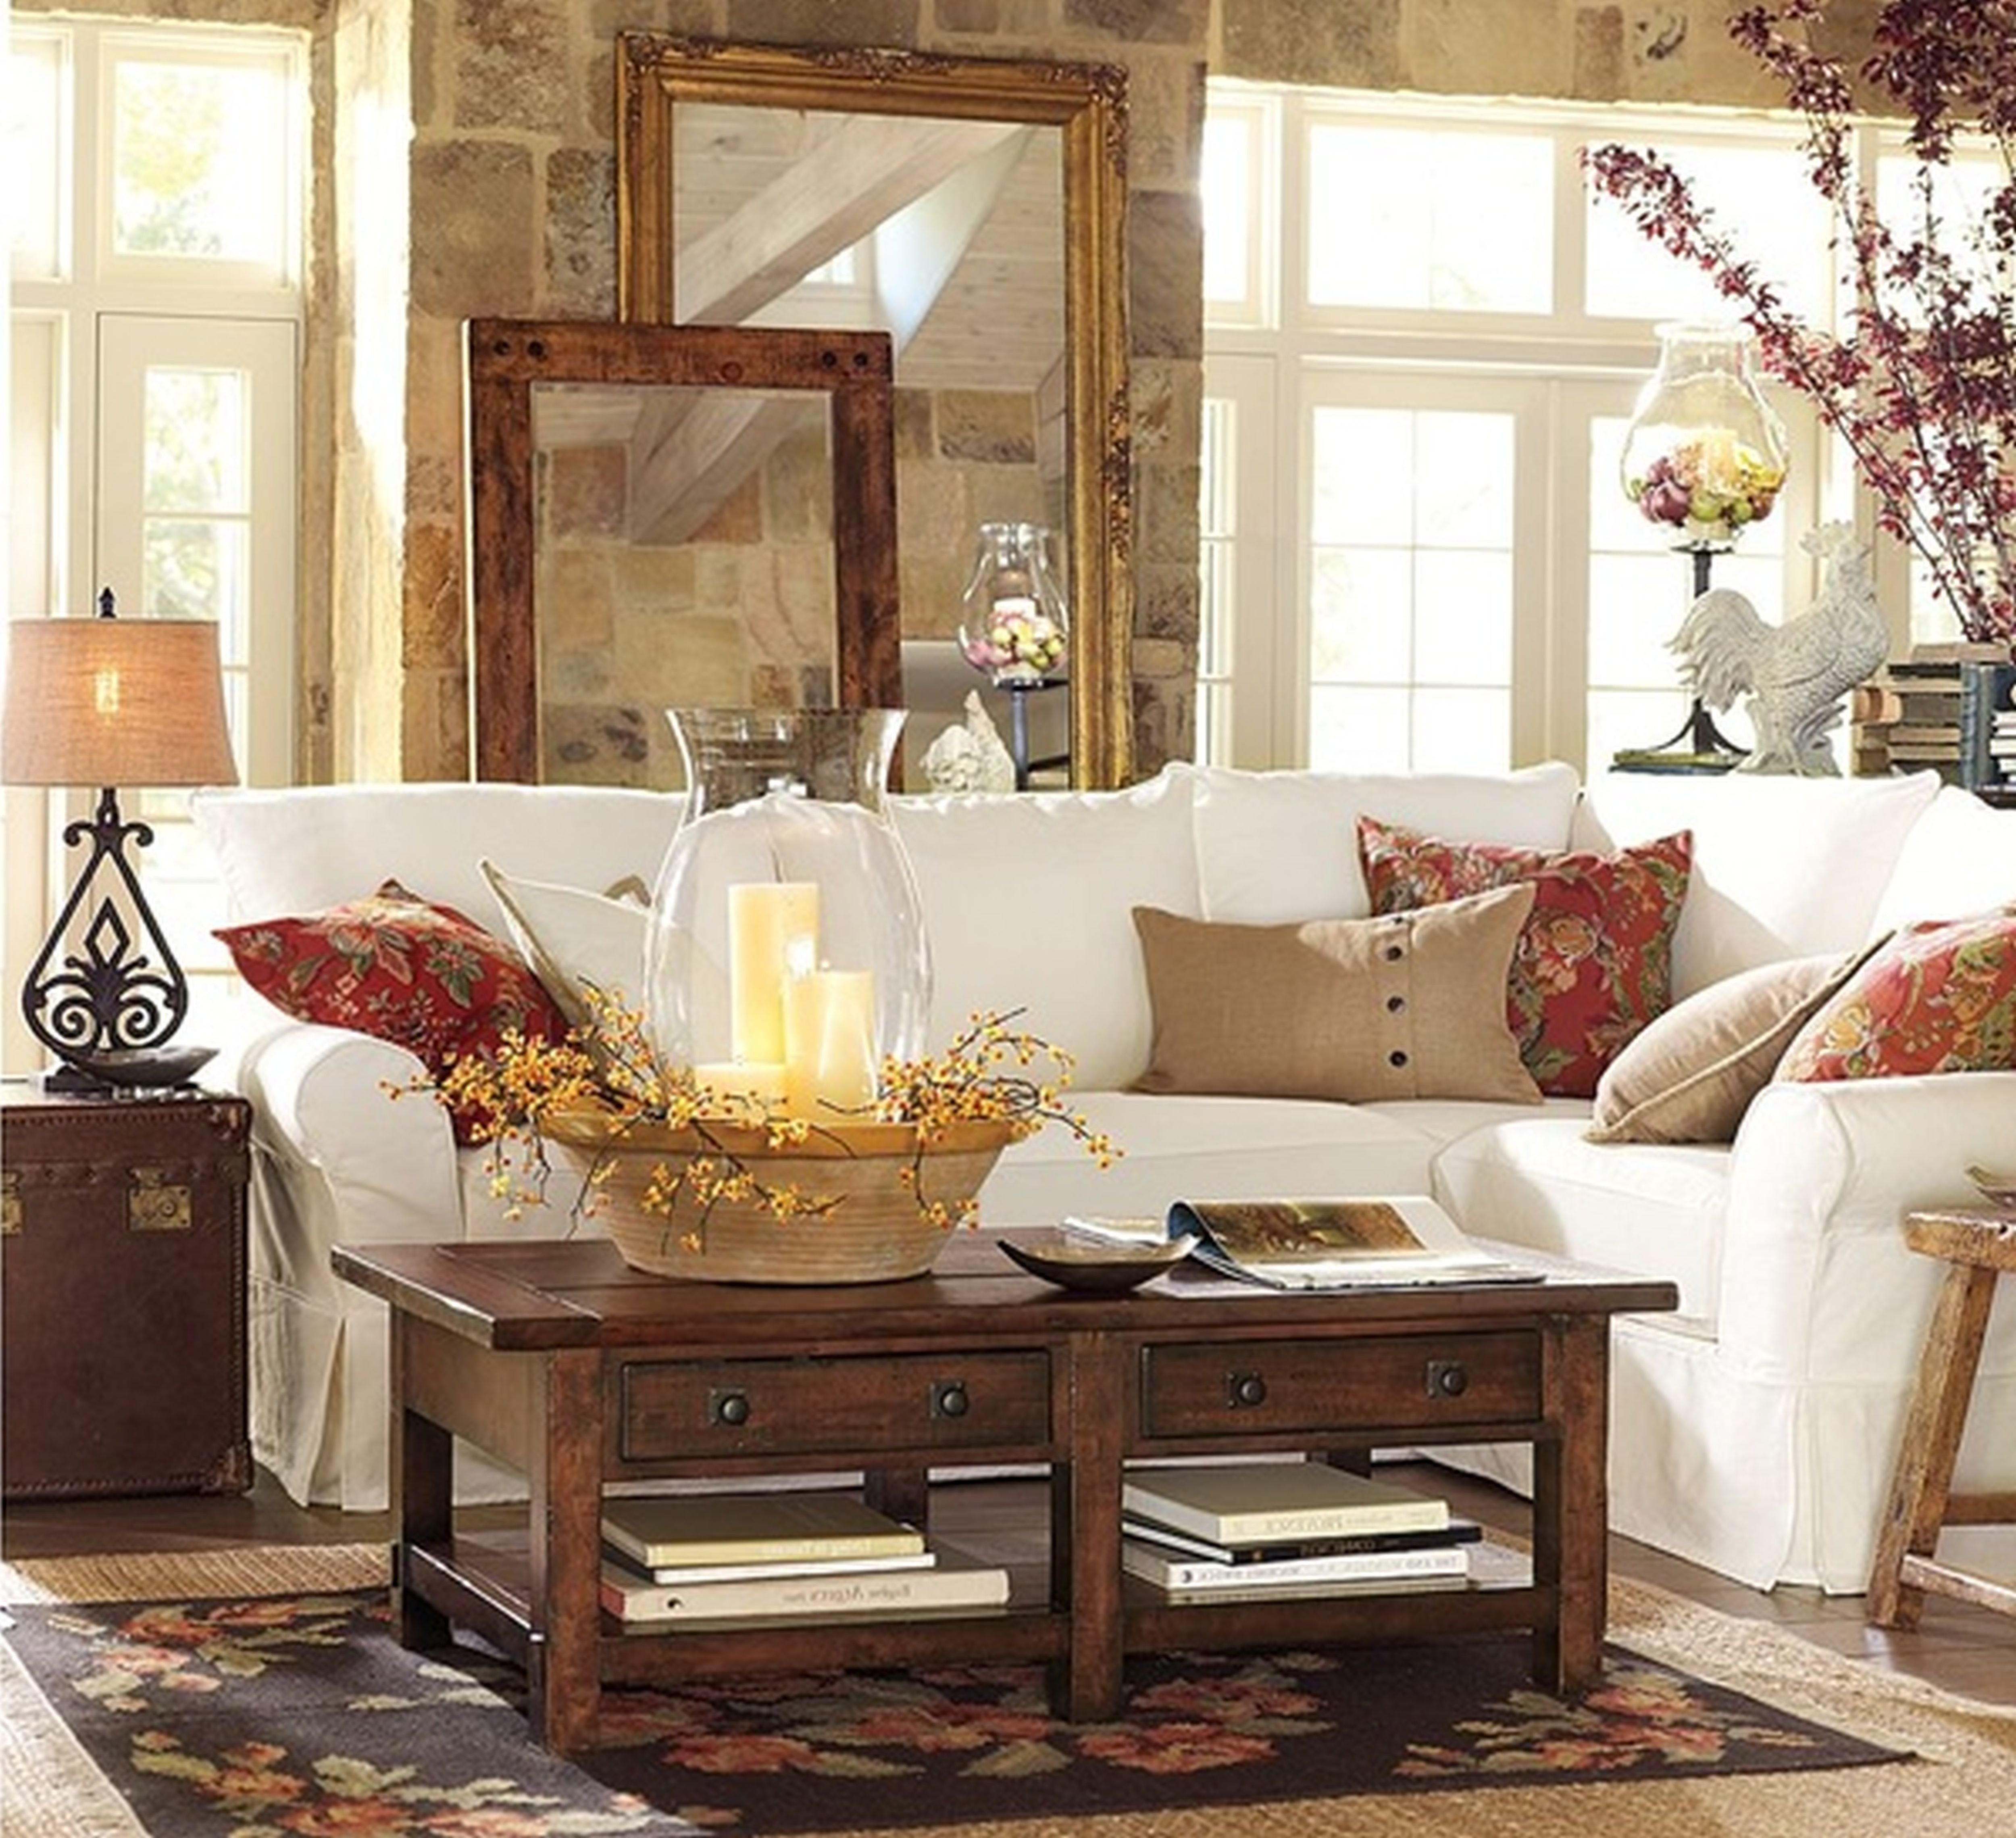 Living Room Ideas Pottery Barn Pottery Barn Living Room Ideas Zion Star Zion Star